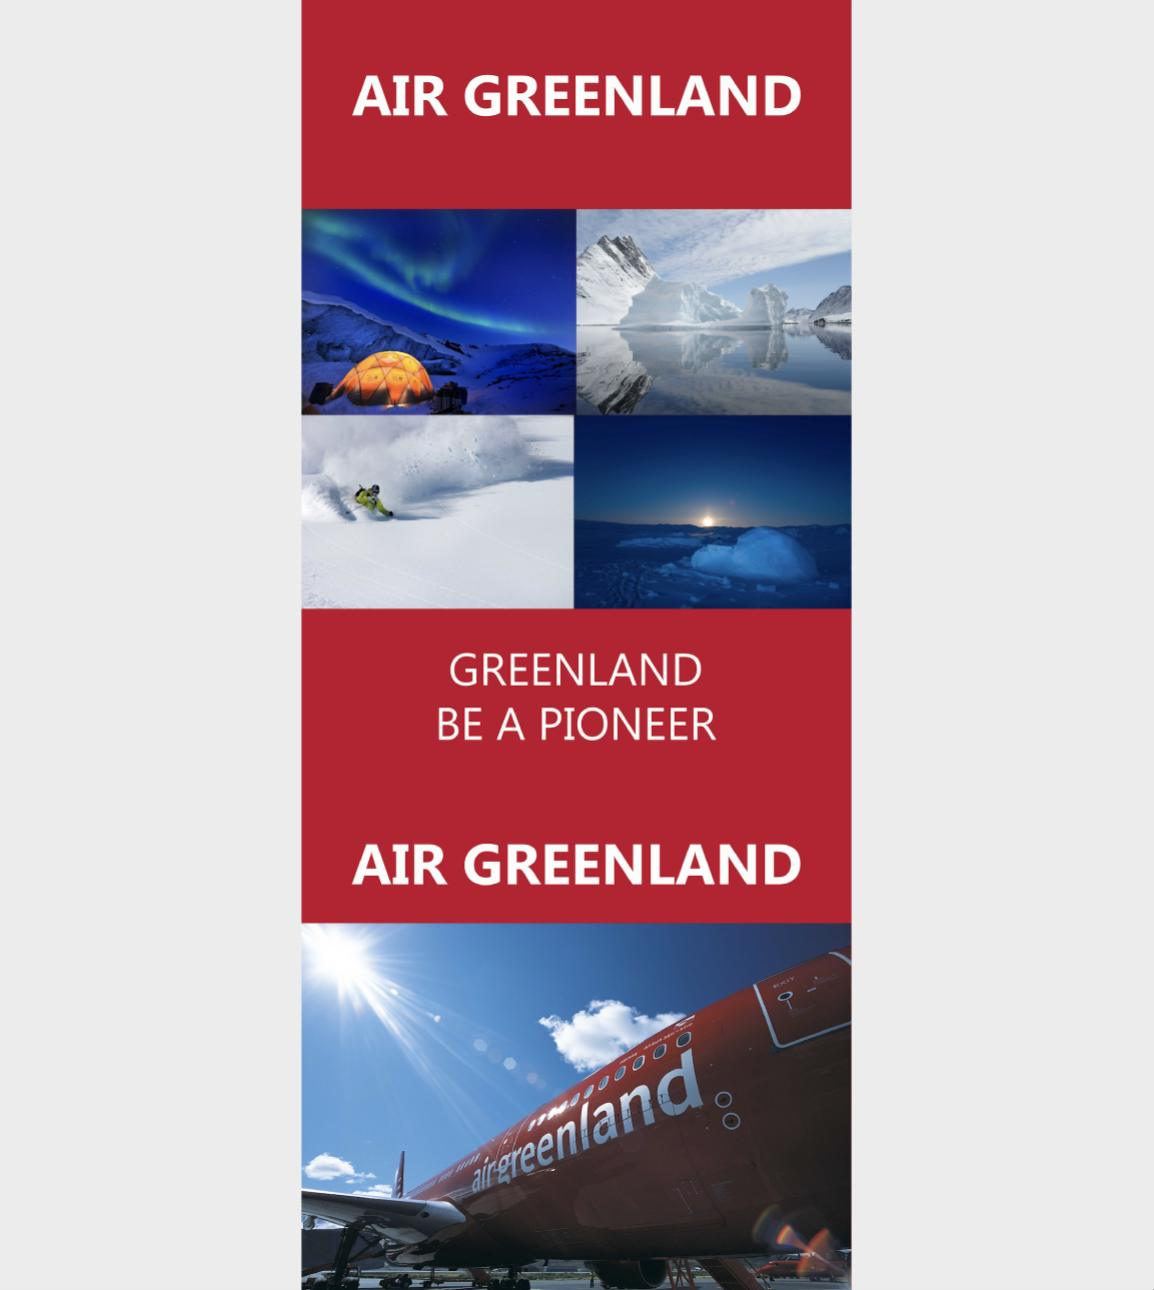 air-greenland-web-zone-digital-zone-web-media